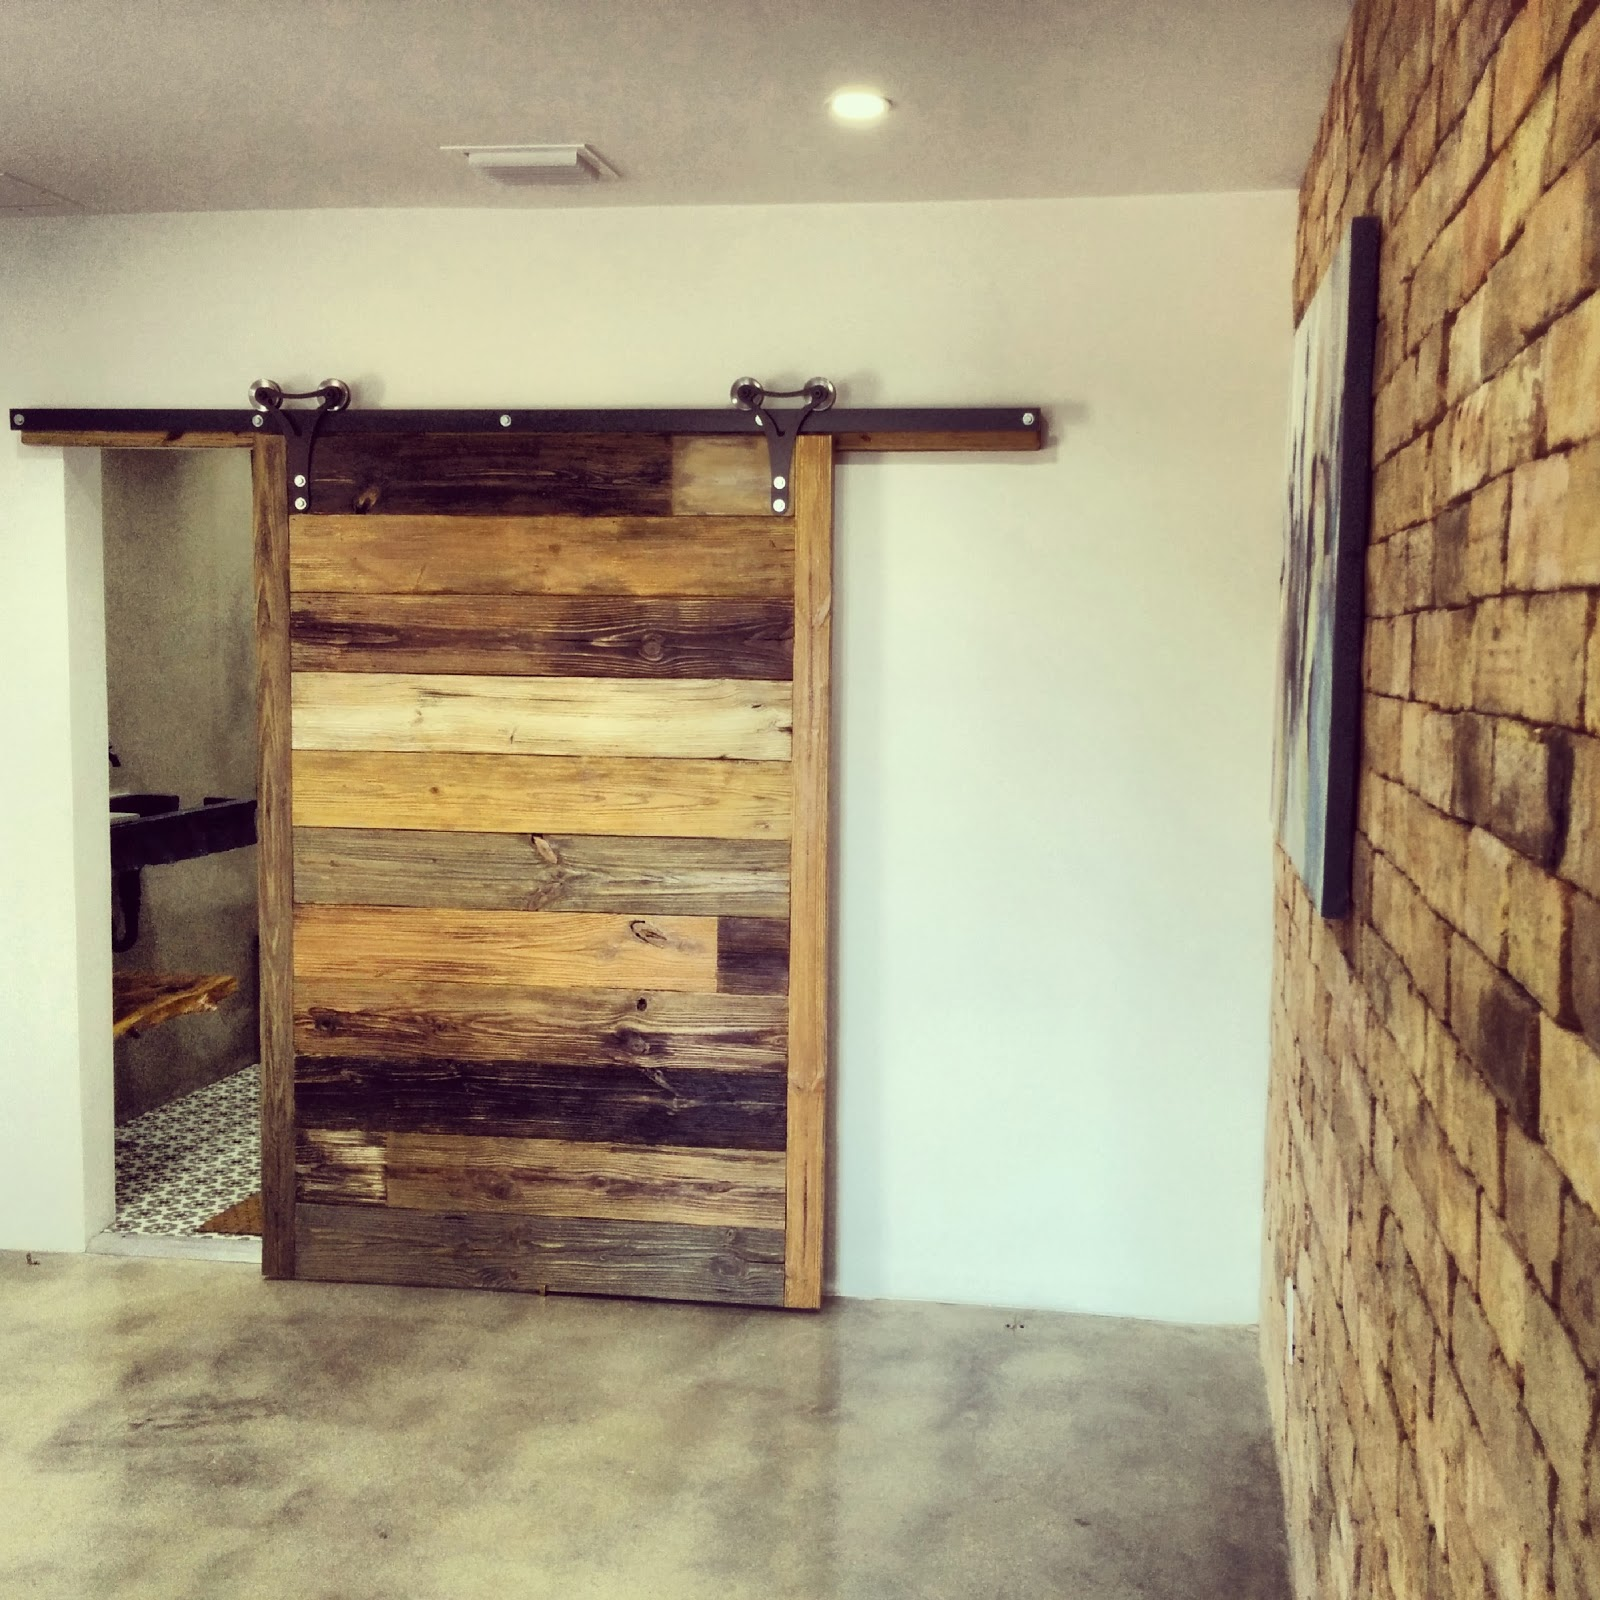 The conversation piece workshop loft sliding barn door for Unique interior door ideas